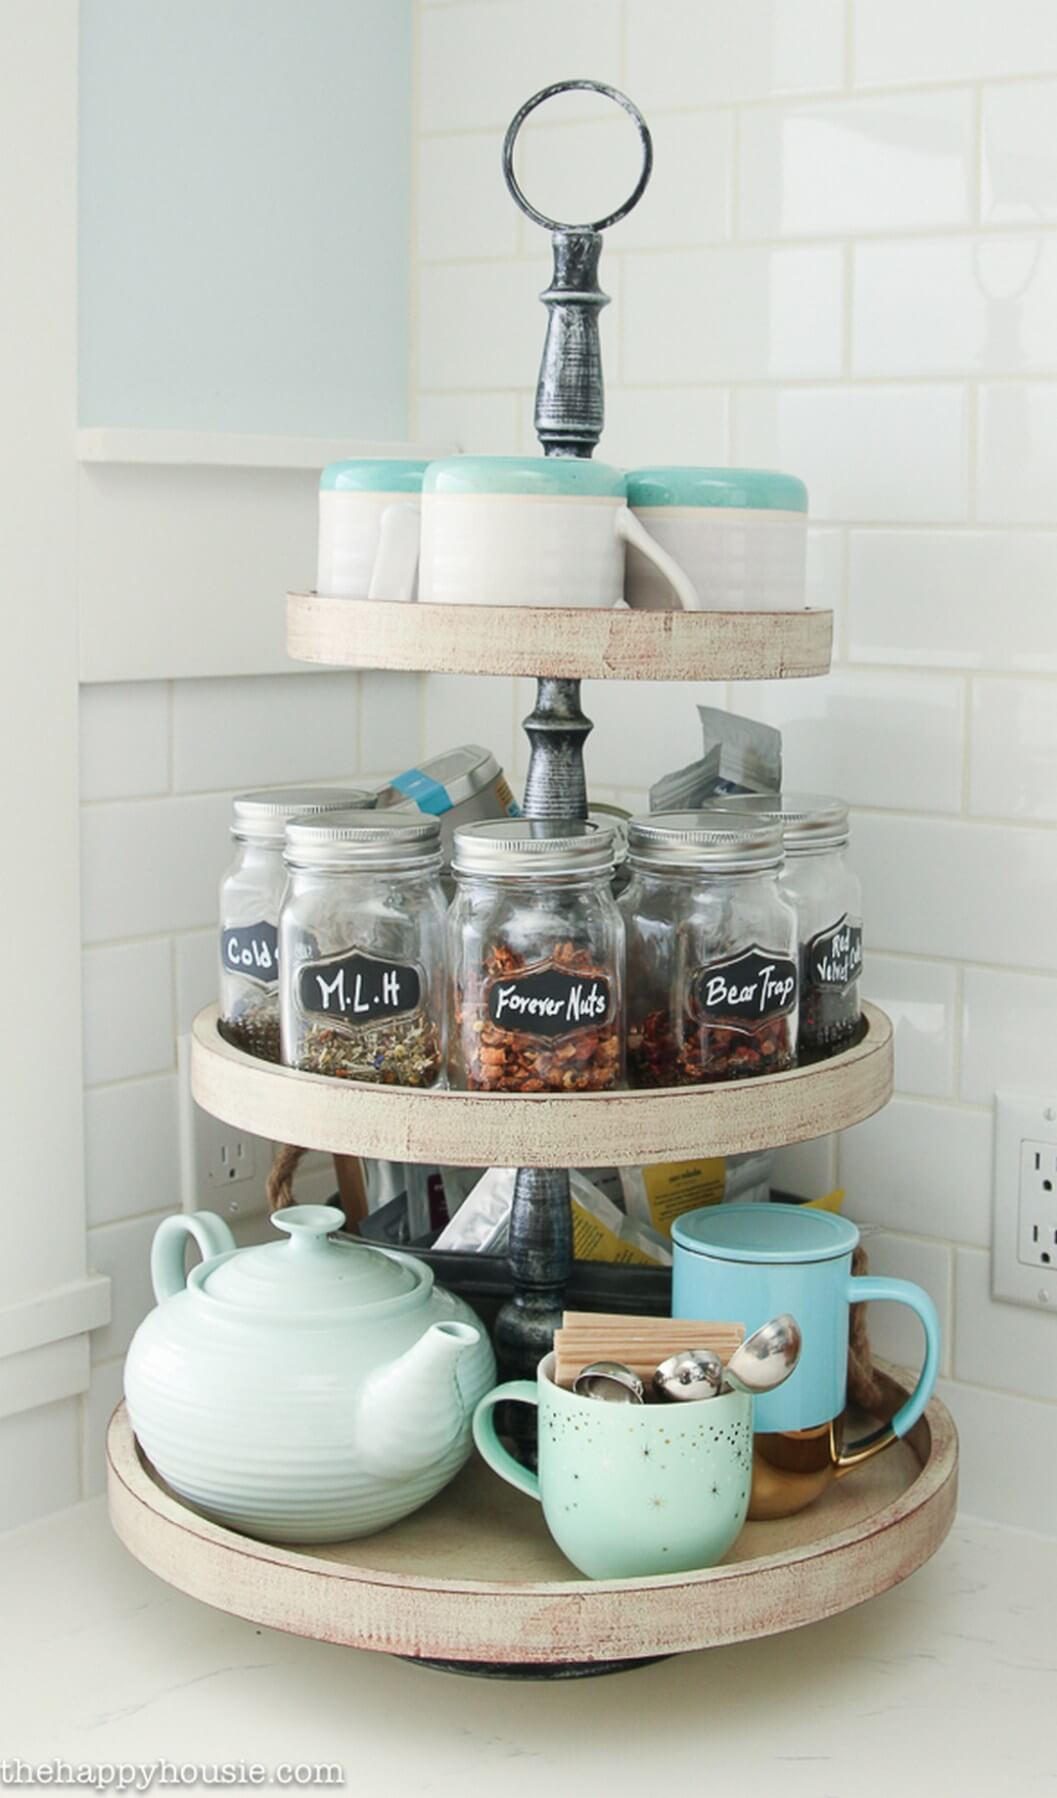 Three Tiered Lazy Susan for Tea and Snacks